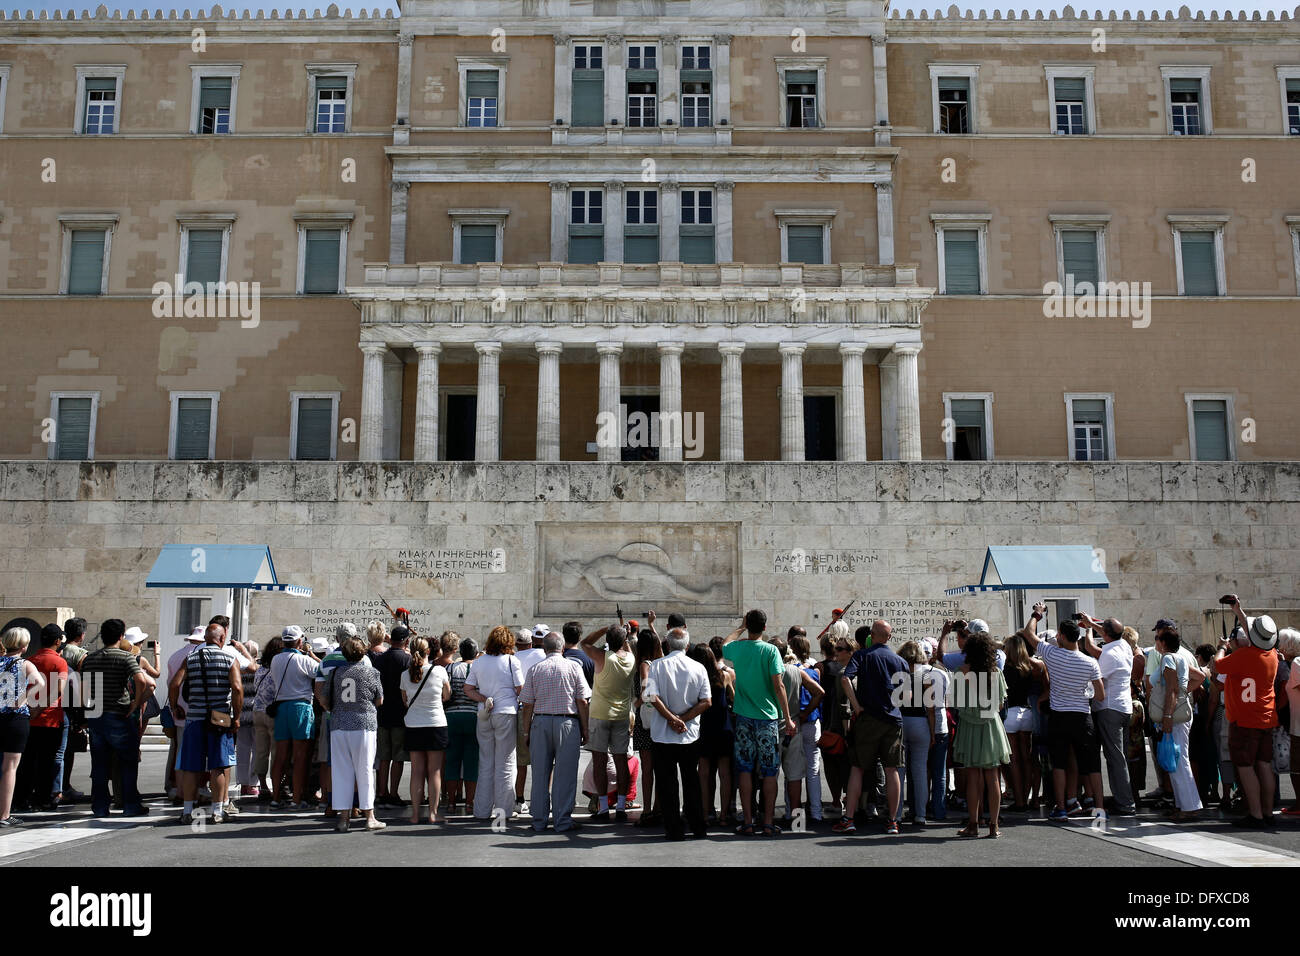 Tourists watching the changing of the guard ceremony at the Tomb of the Unknown Soldier in front of the Greek Parliament - Stock Image